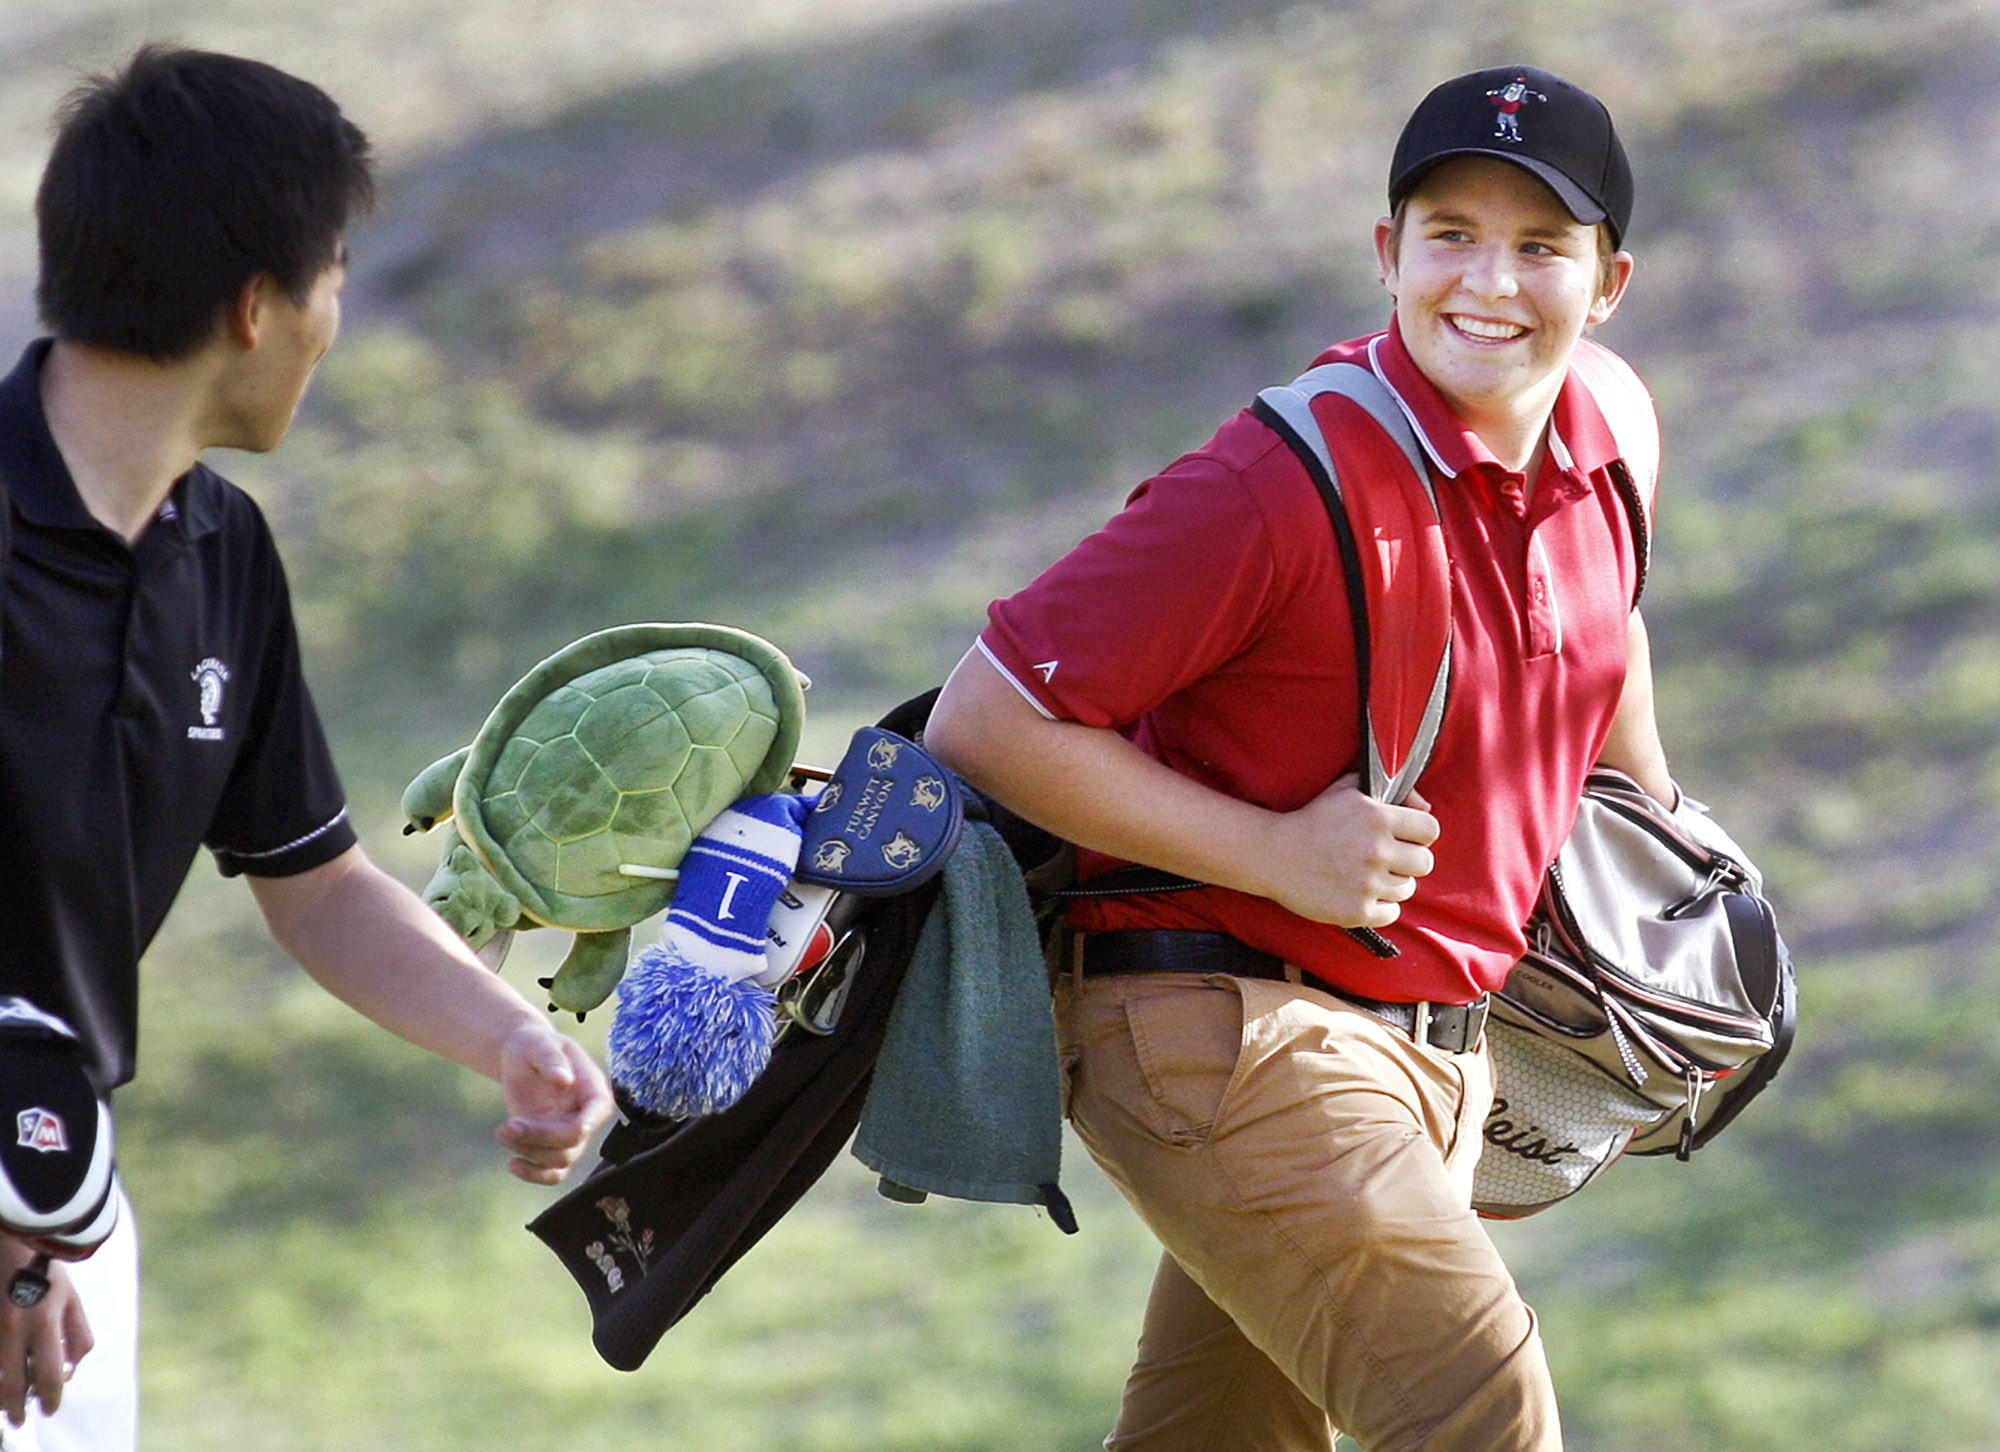 La Cañada's Robby Stehlin smiles to a teammate as he walks to his ball at practice at the La Cañada Flintridge Country Club on Tuesday, February 25, 2014.